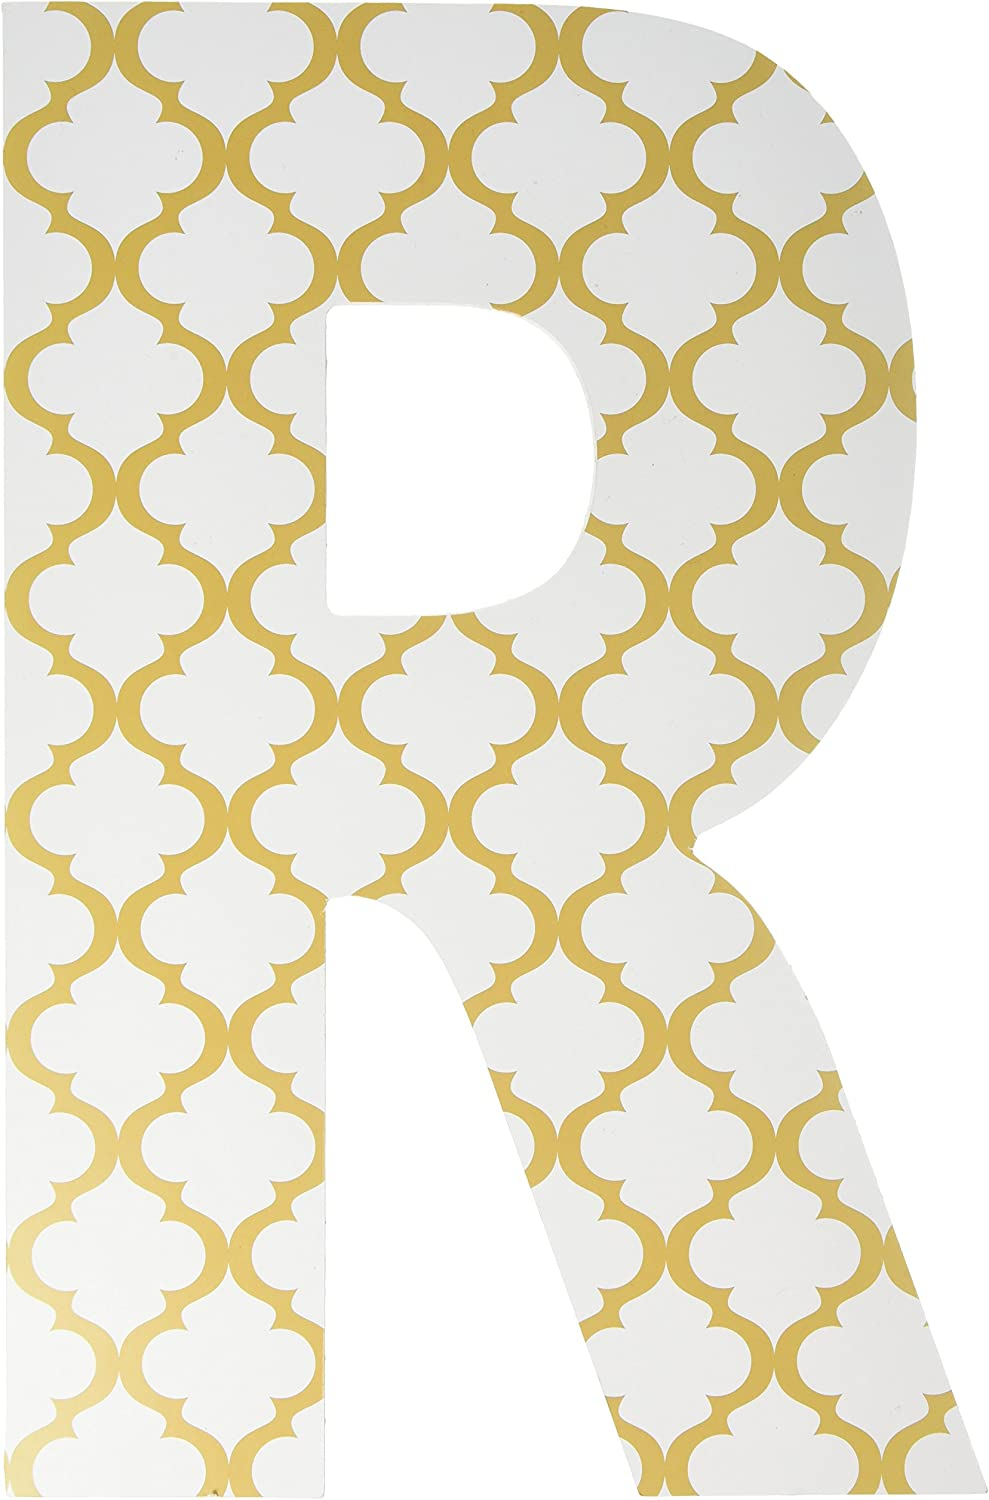 Stupell Home Décor gold and White Trellis 18 Inch Hanging Wooden Initial, 12 x 0.5 x 18, Proudly Made in USA